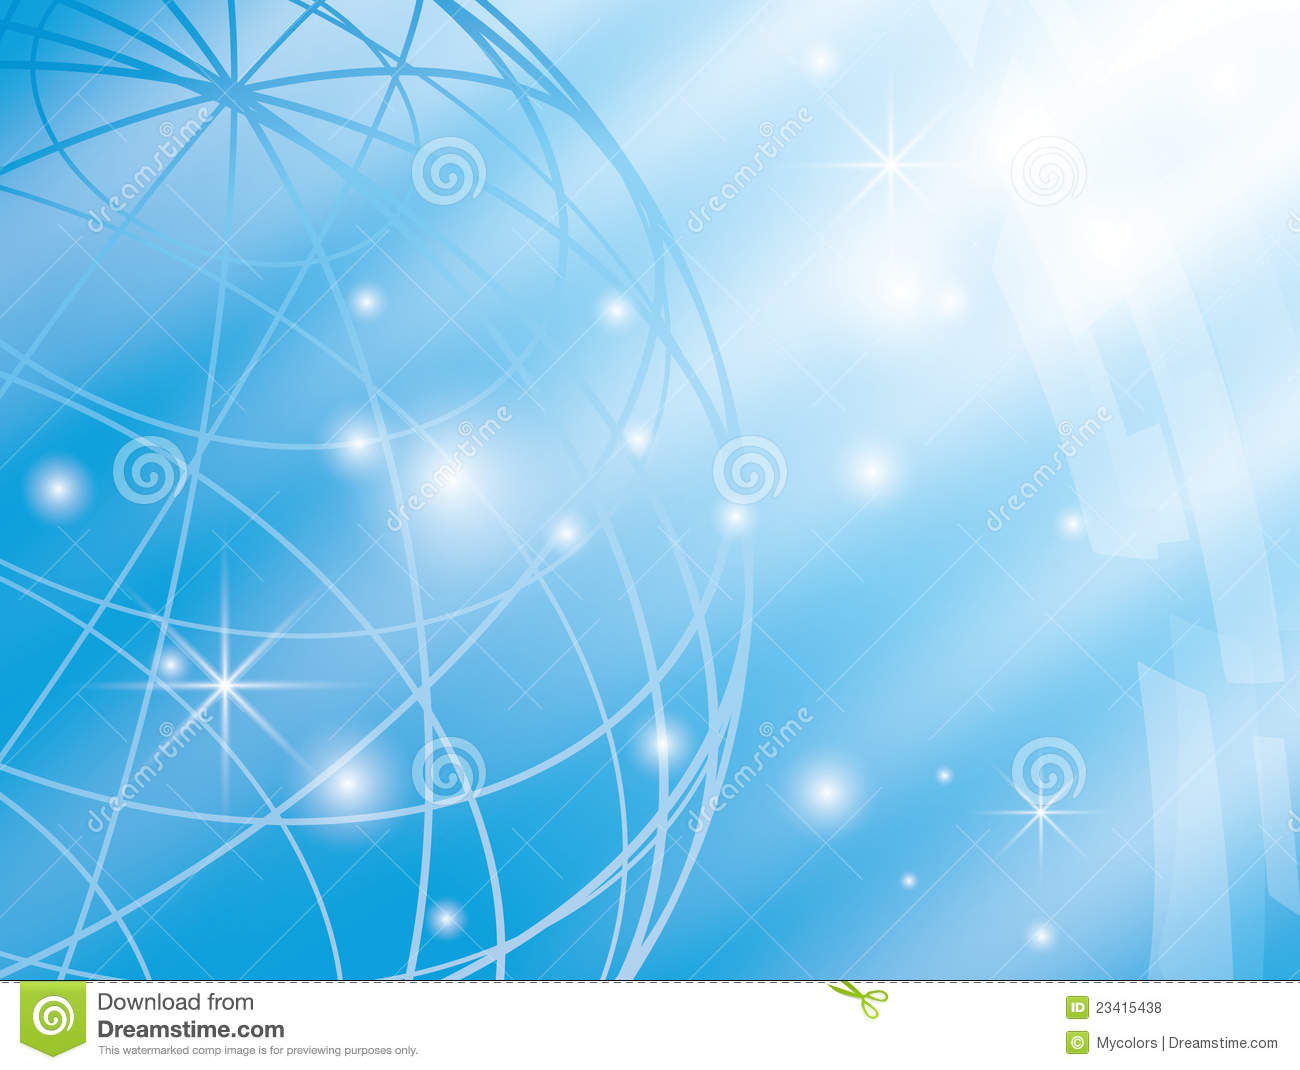 Royalty Free Stock Photos: Abstract vector background with blue globe